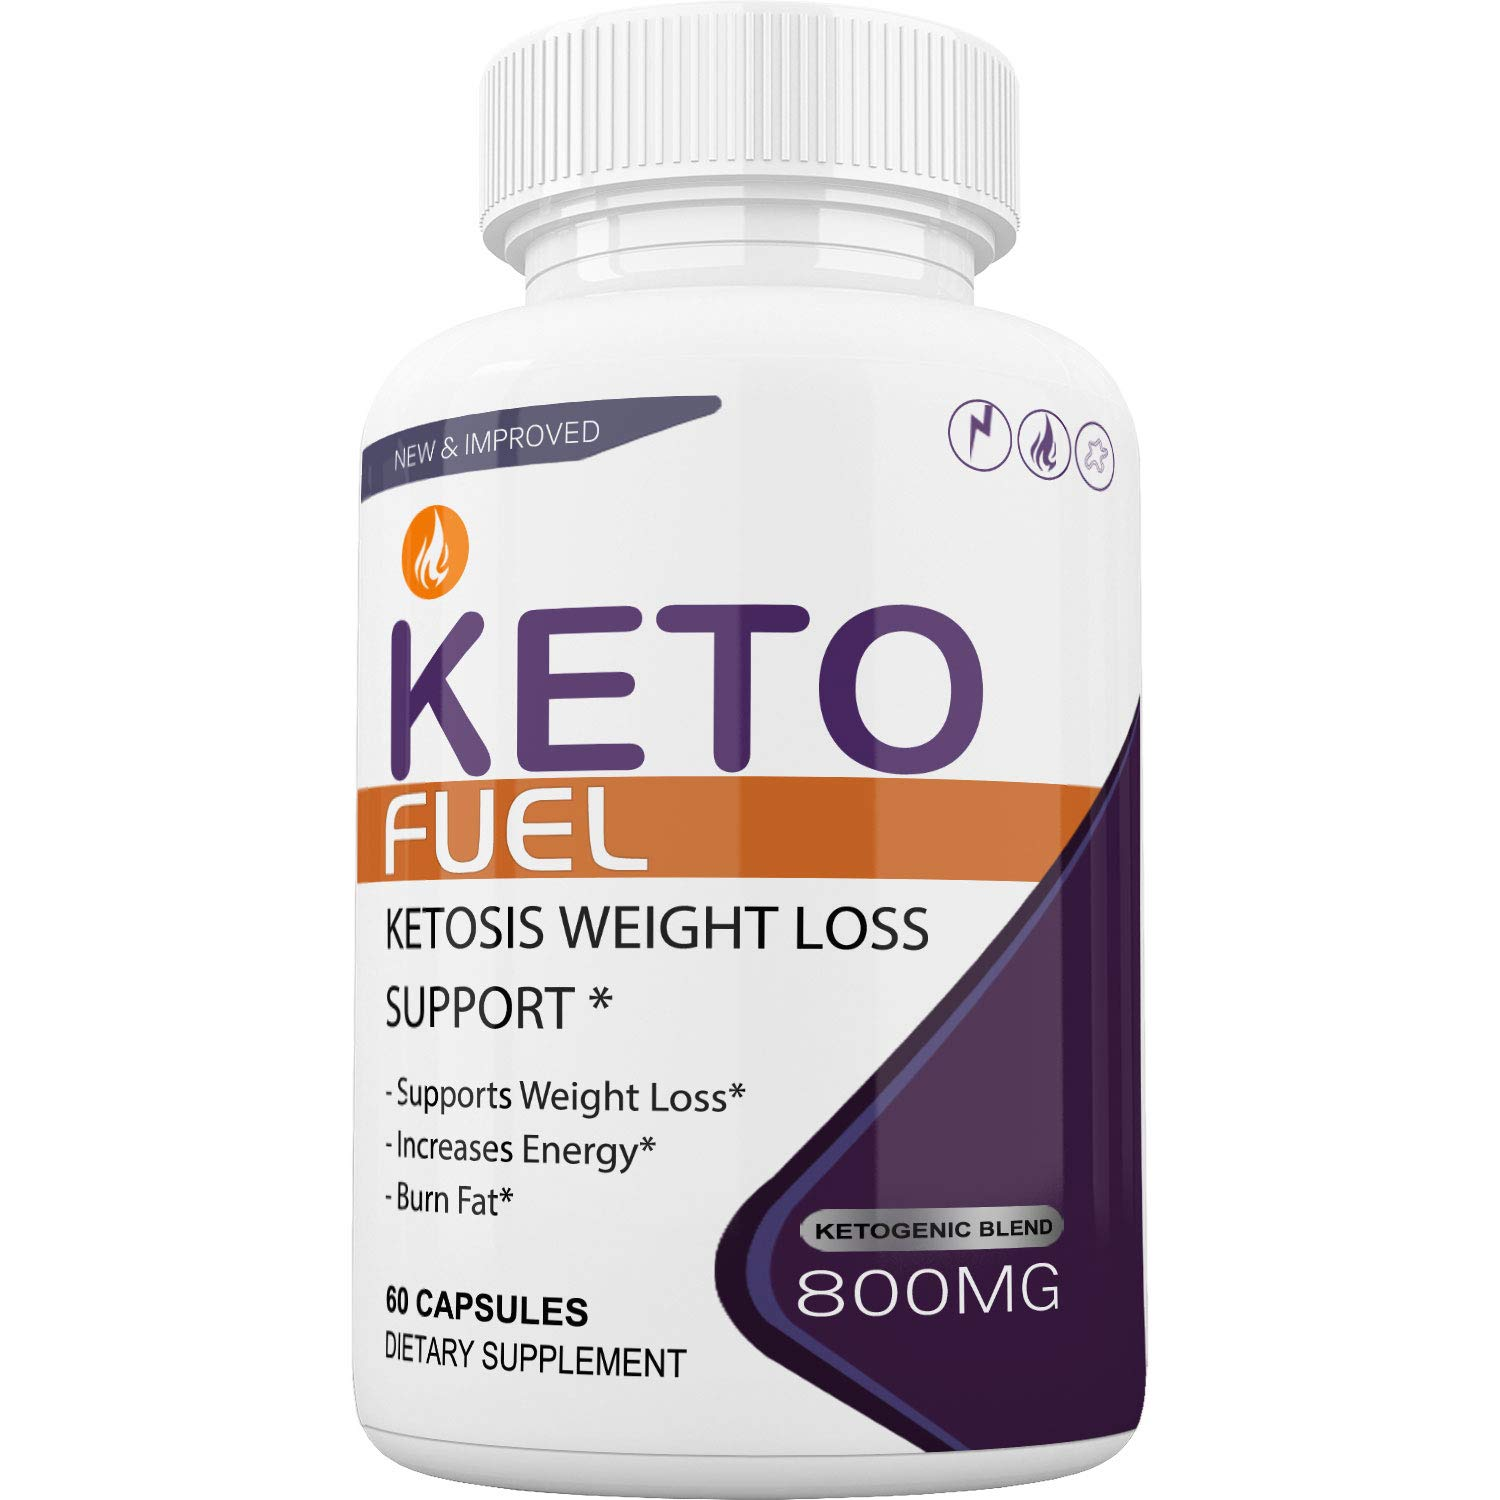 Legends Keto Fuel (1 Month Supply) by Legends Keto Fuel